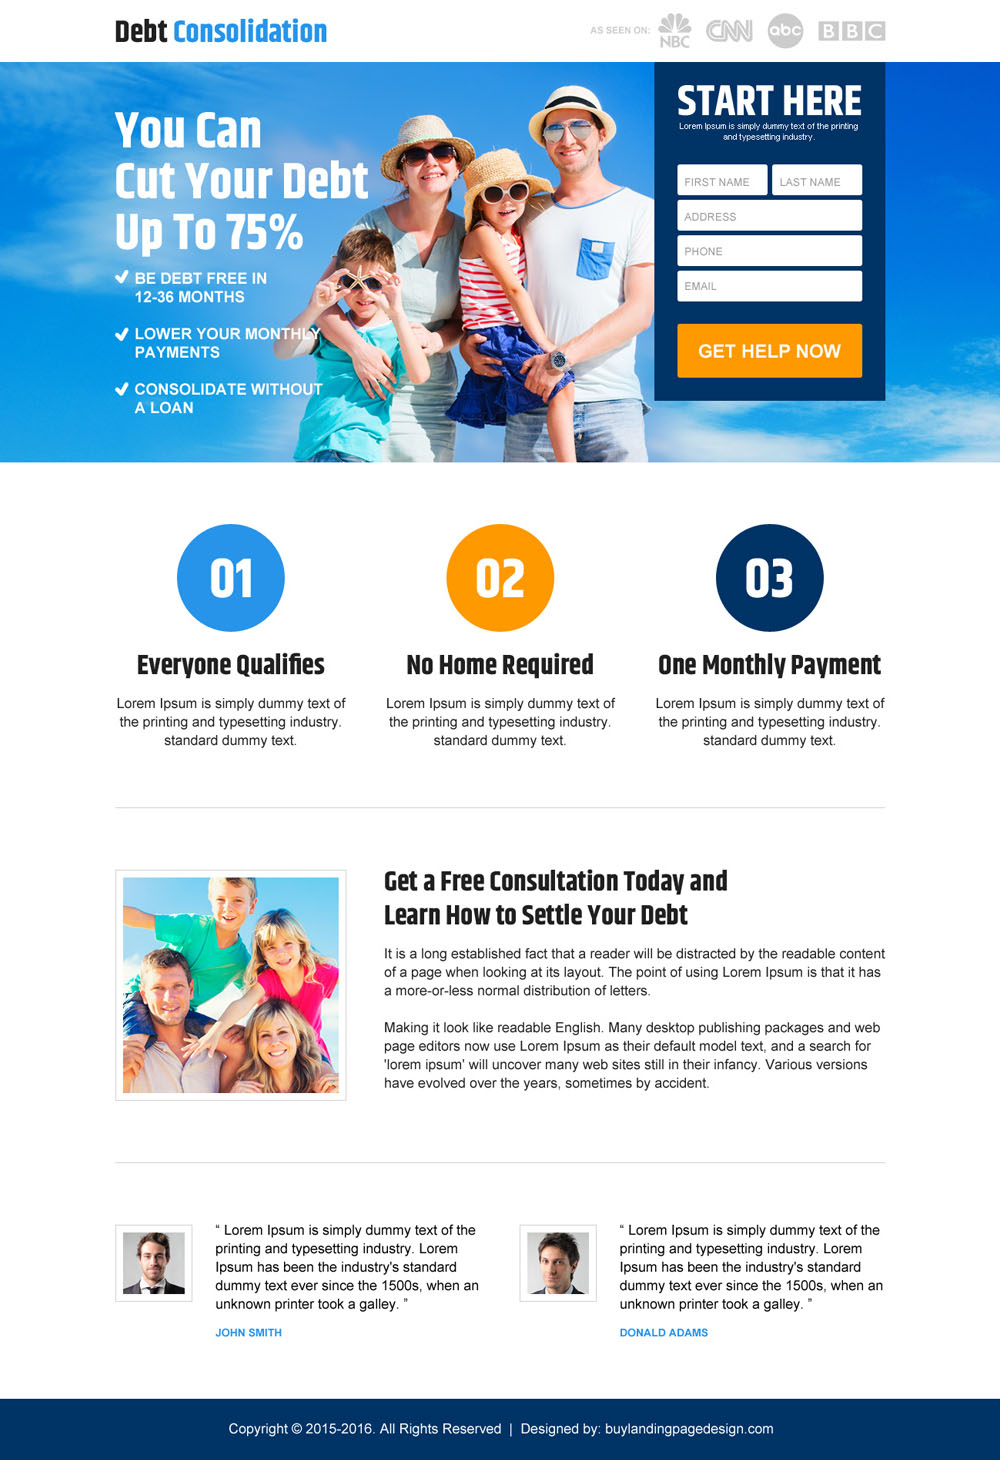 get-help-to-cut-your-debt-landing-page-design-templates-that-converts-046